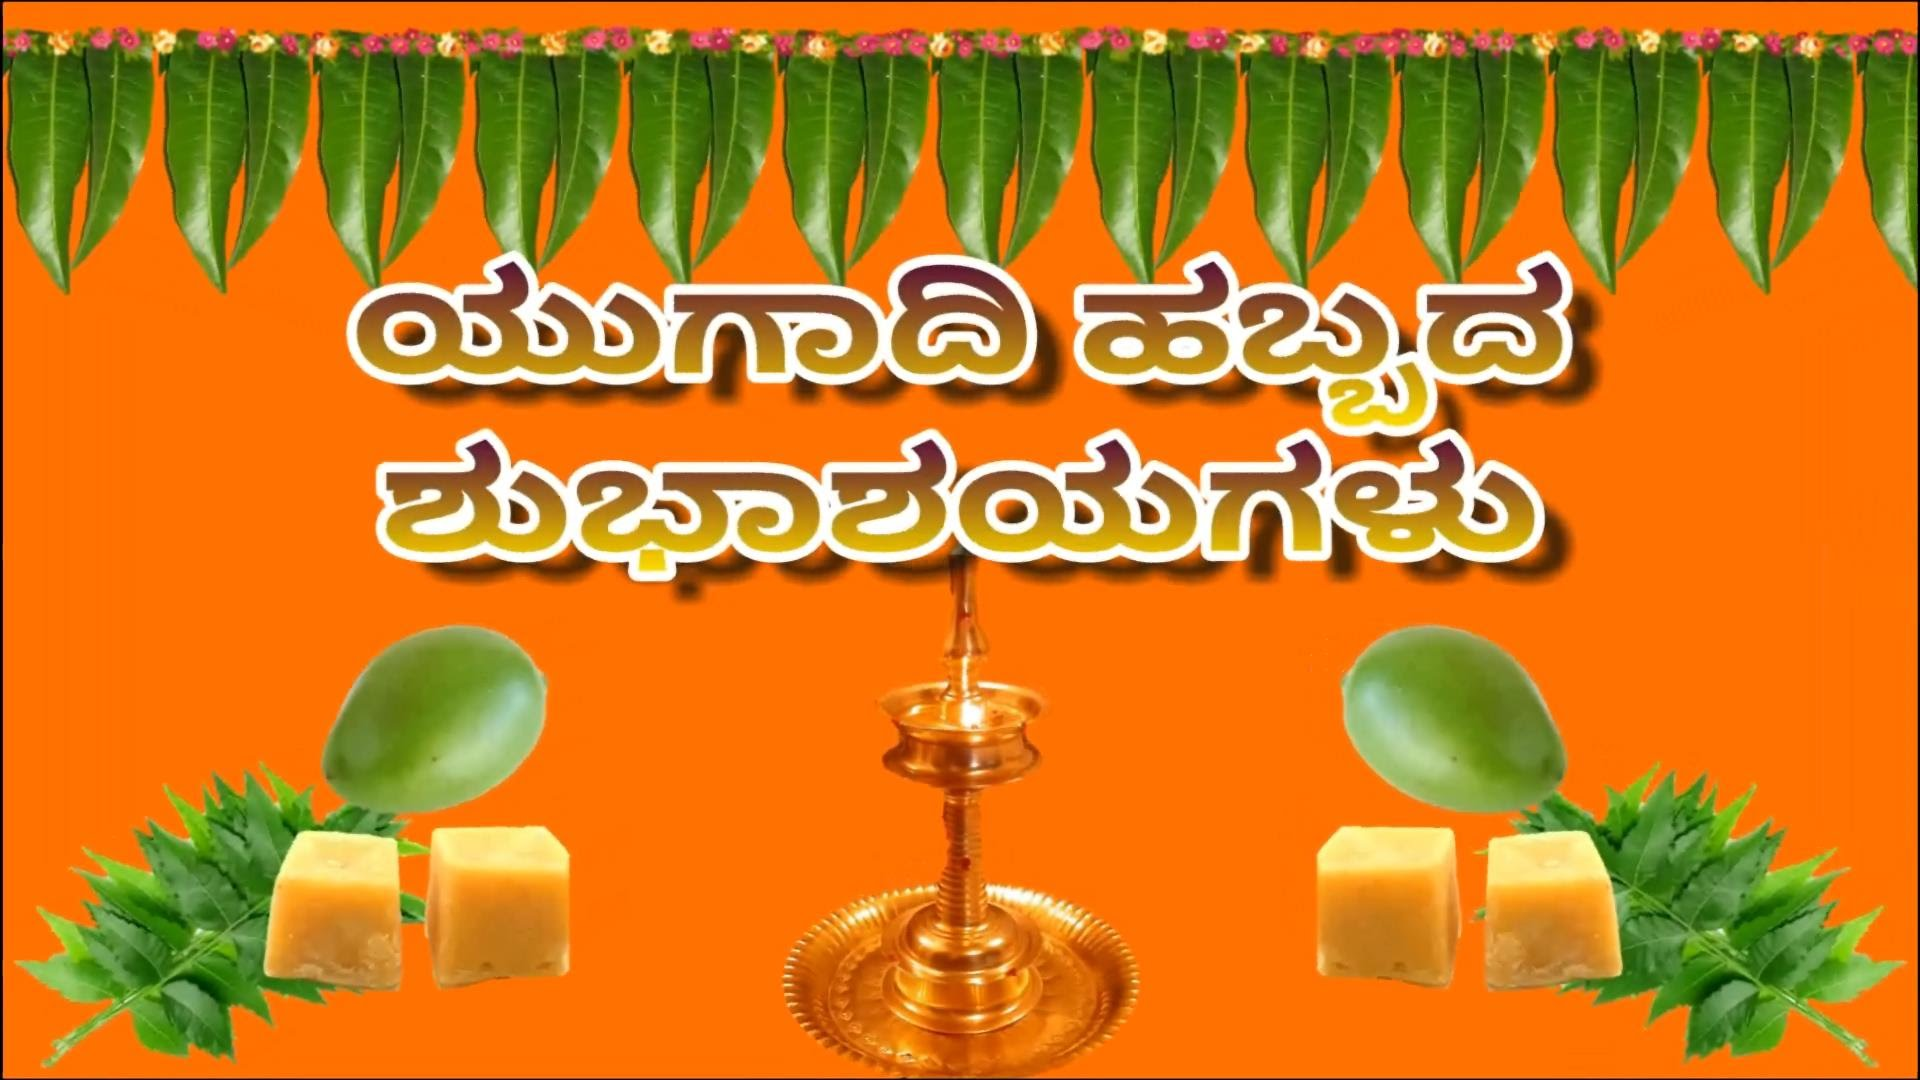 ugadi wishes in kannada font